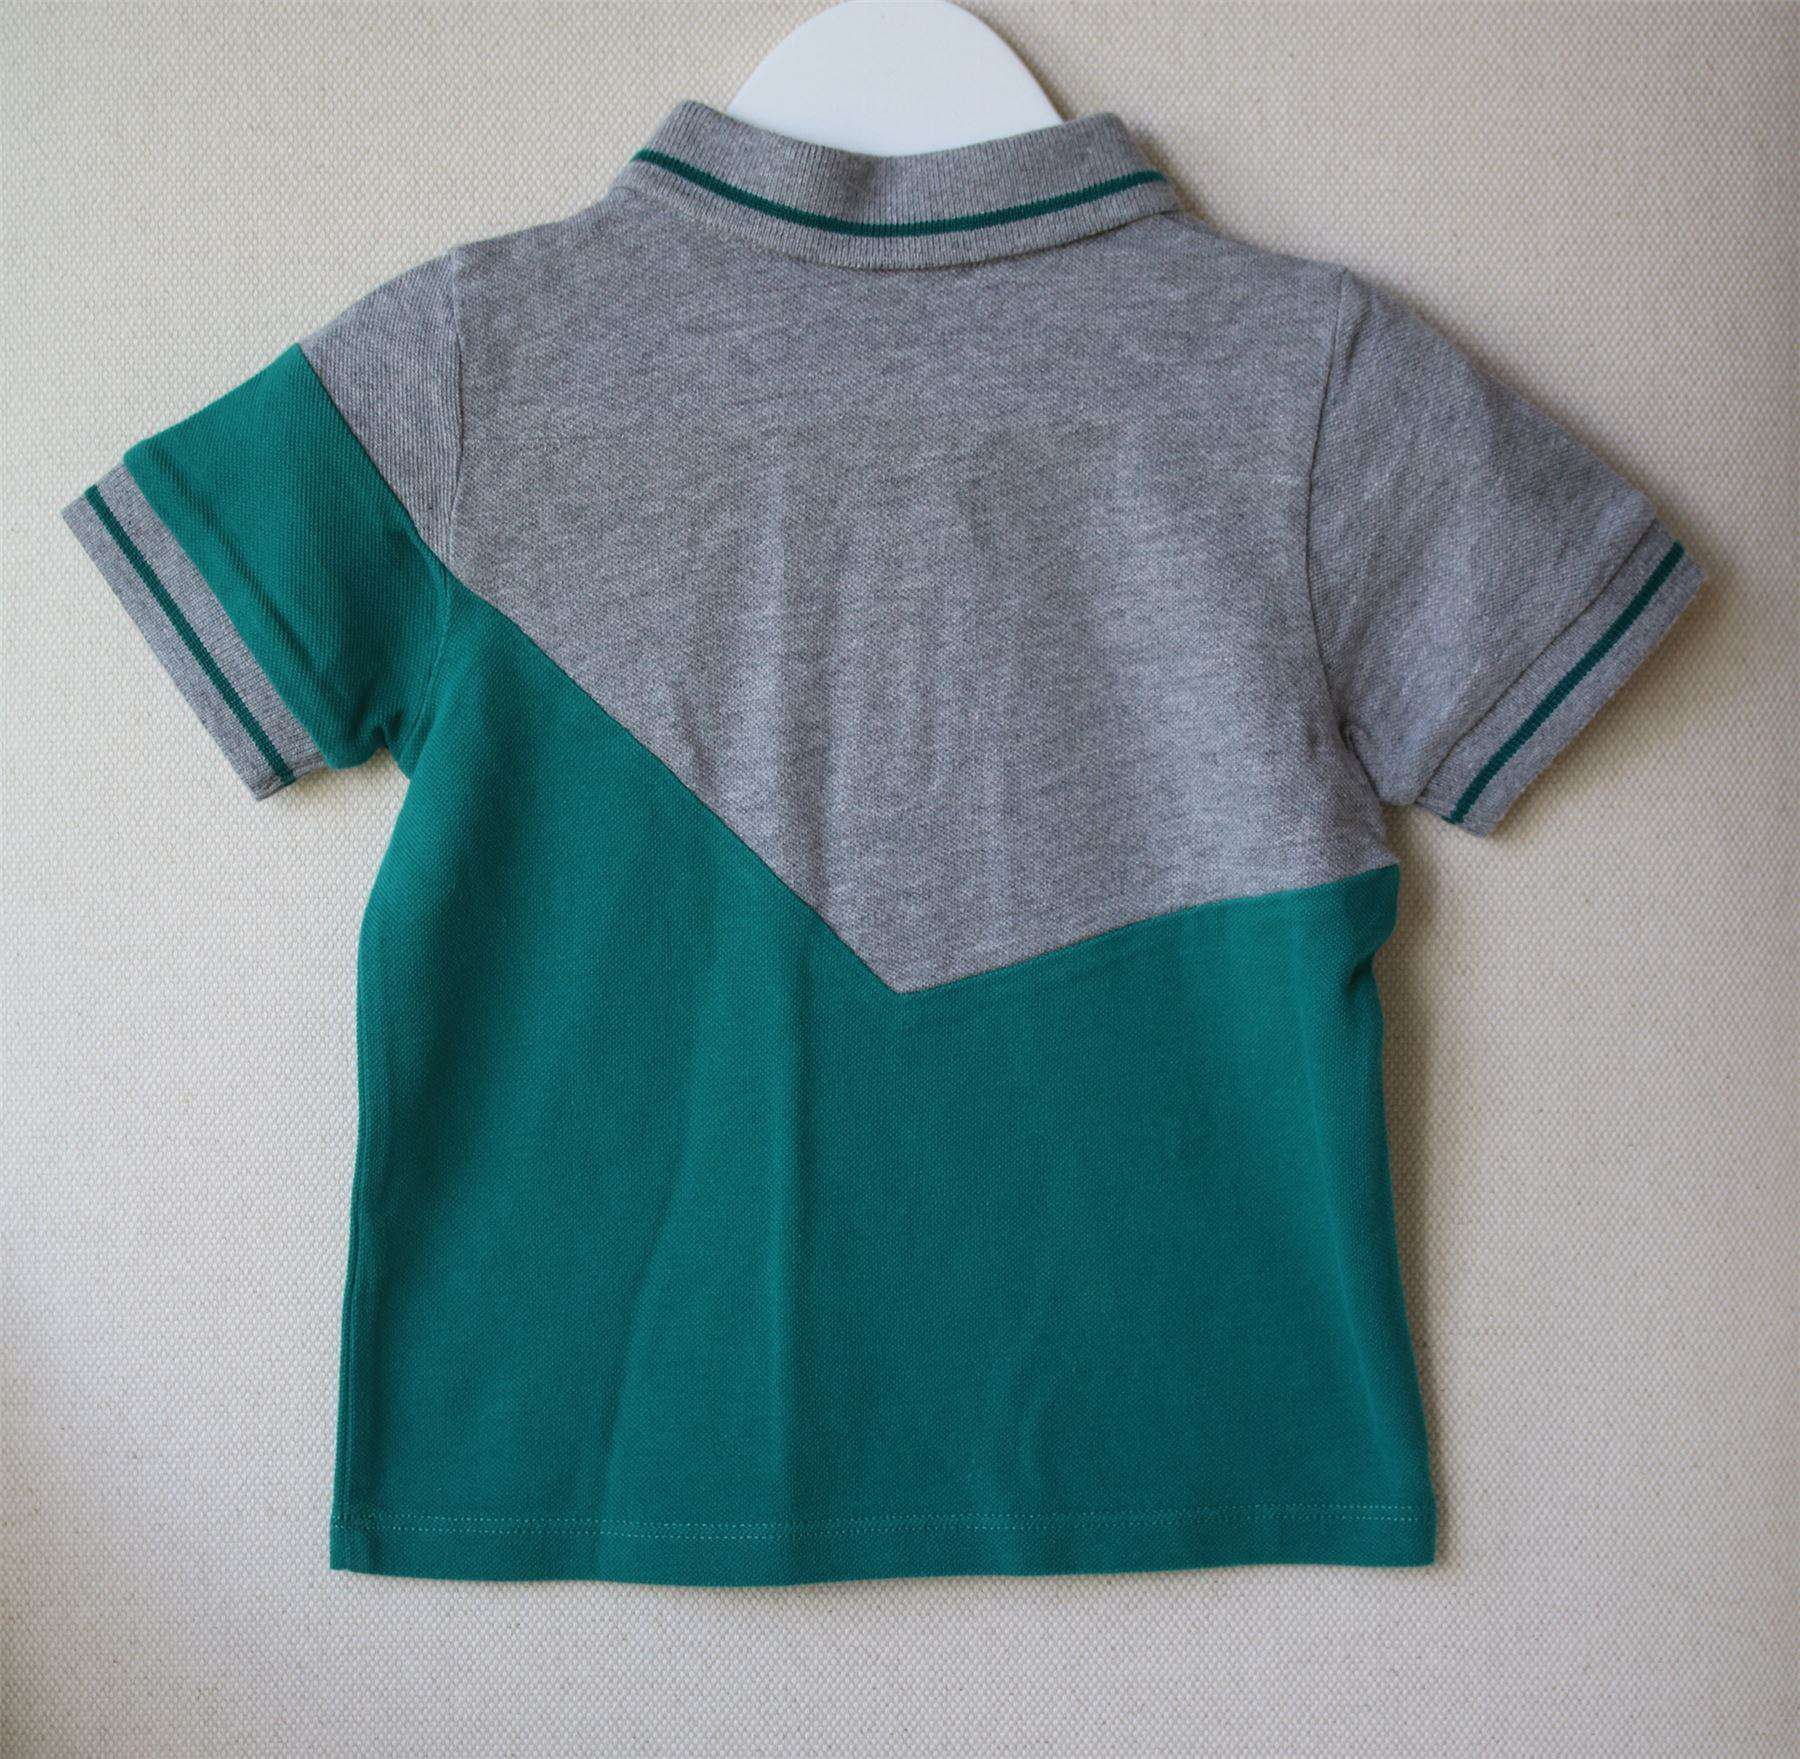 BABY DIOR BOYS GREY & GREEN POLO SHIRT 18 MONTHS